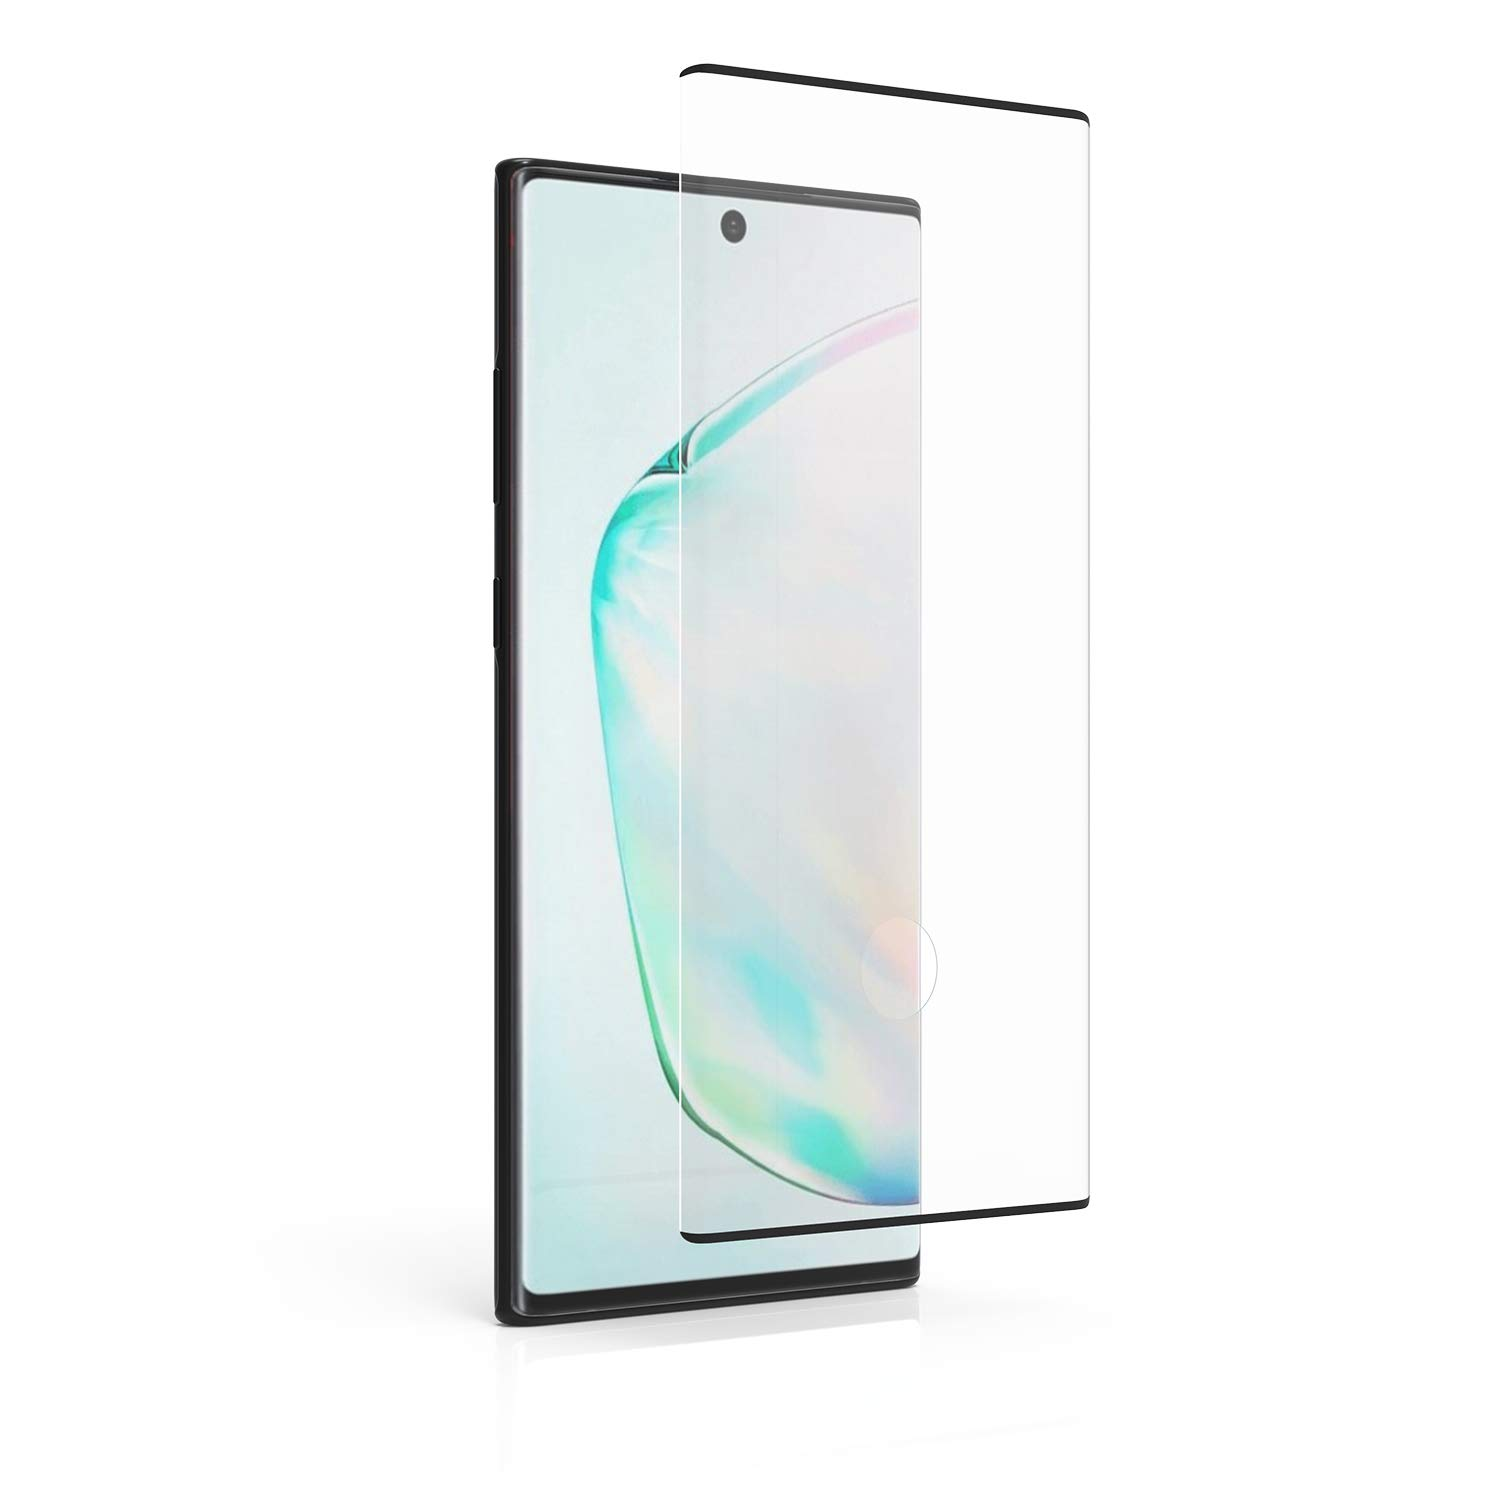 PureGear Compatible with Samsung Galaxy Note10+ Tempered Glass Screen Protector with Fingerprint Sensor Ready Cutout, Self Alignment Tray, Touch and Swipe Precision, Premium Protection, Case Friendly by PureGear